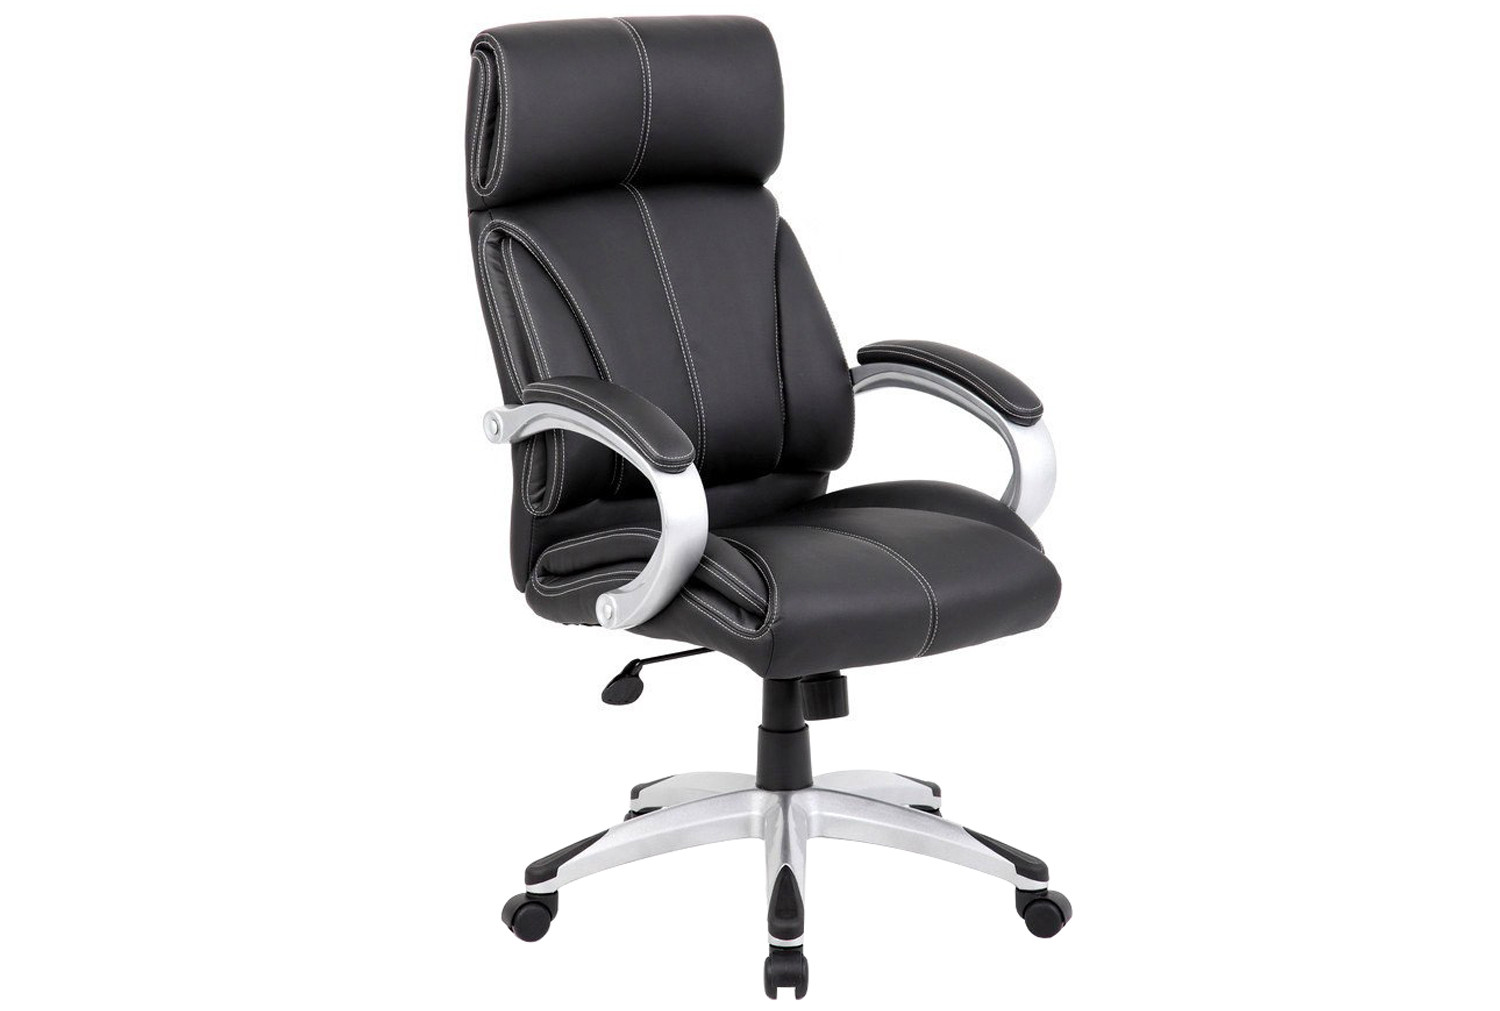 Beckett high back executive chair